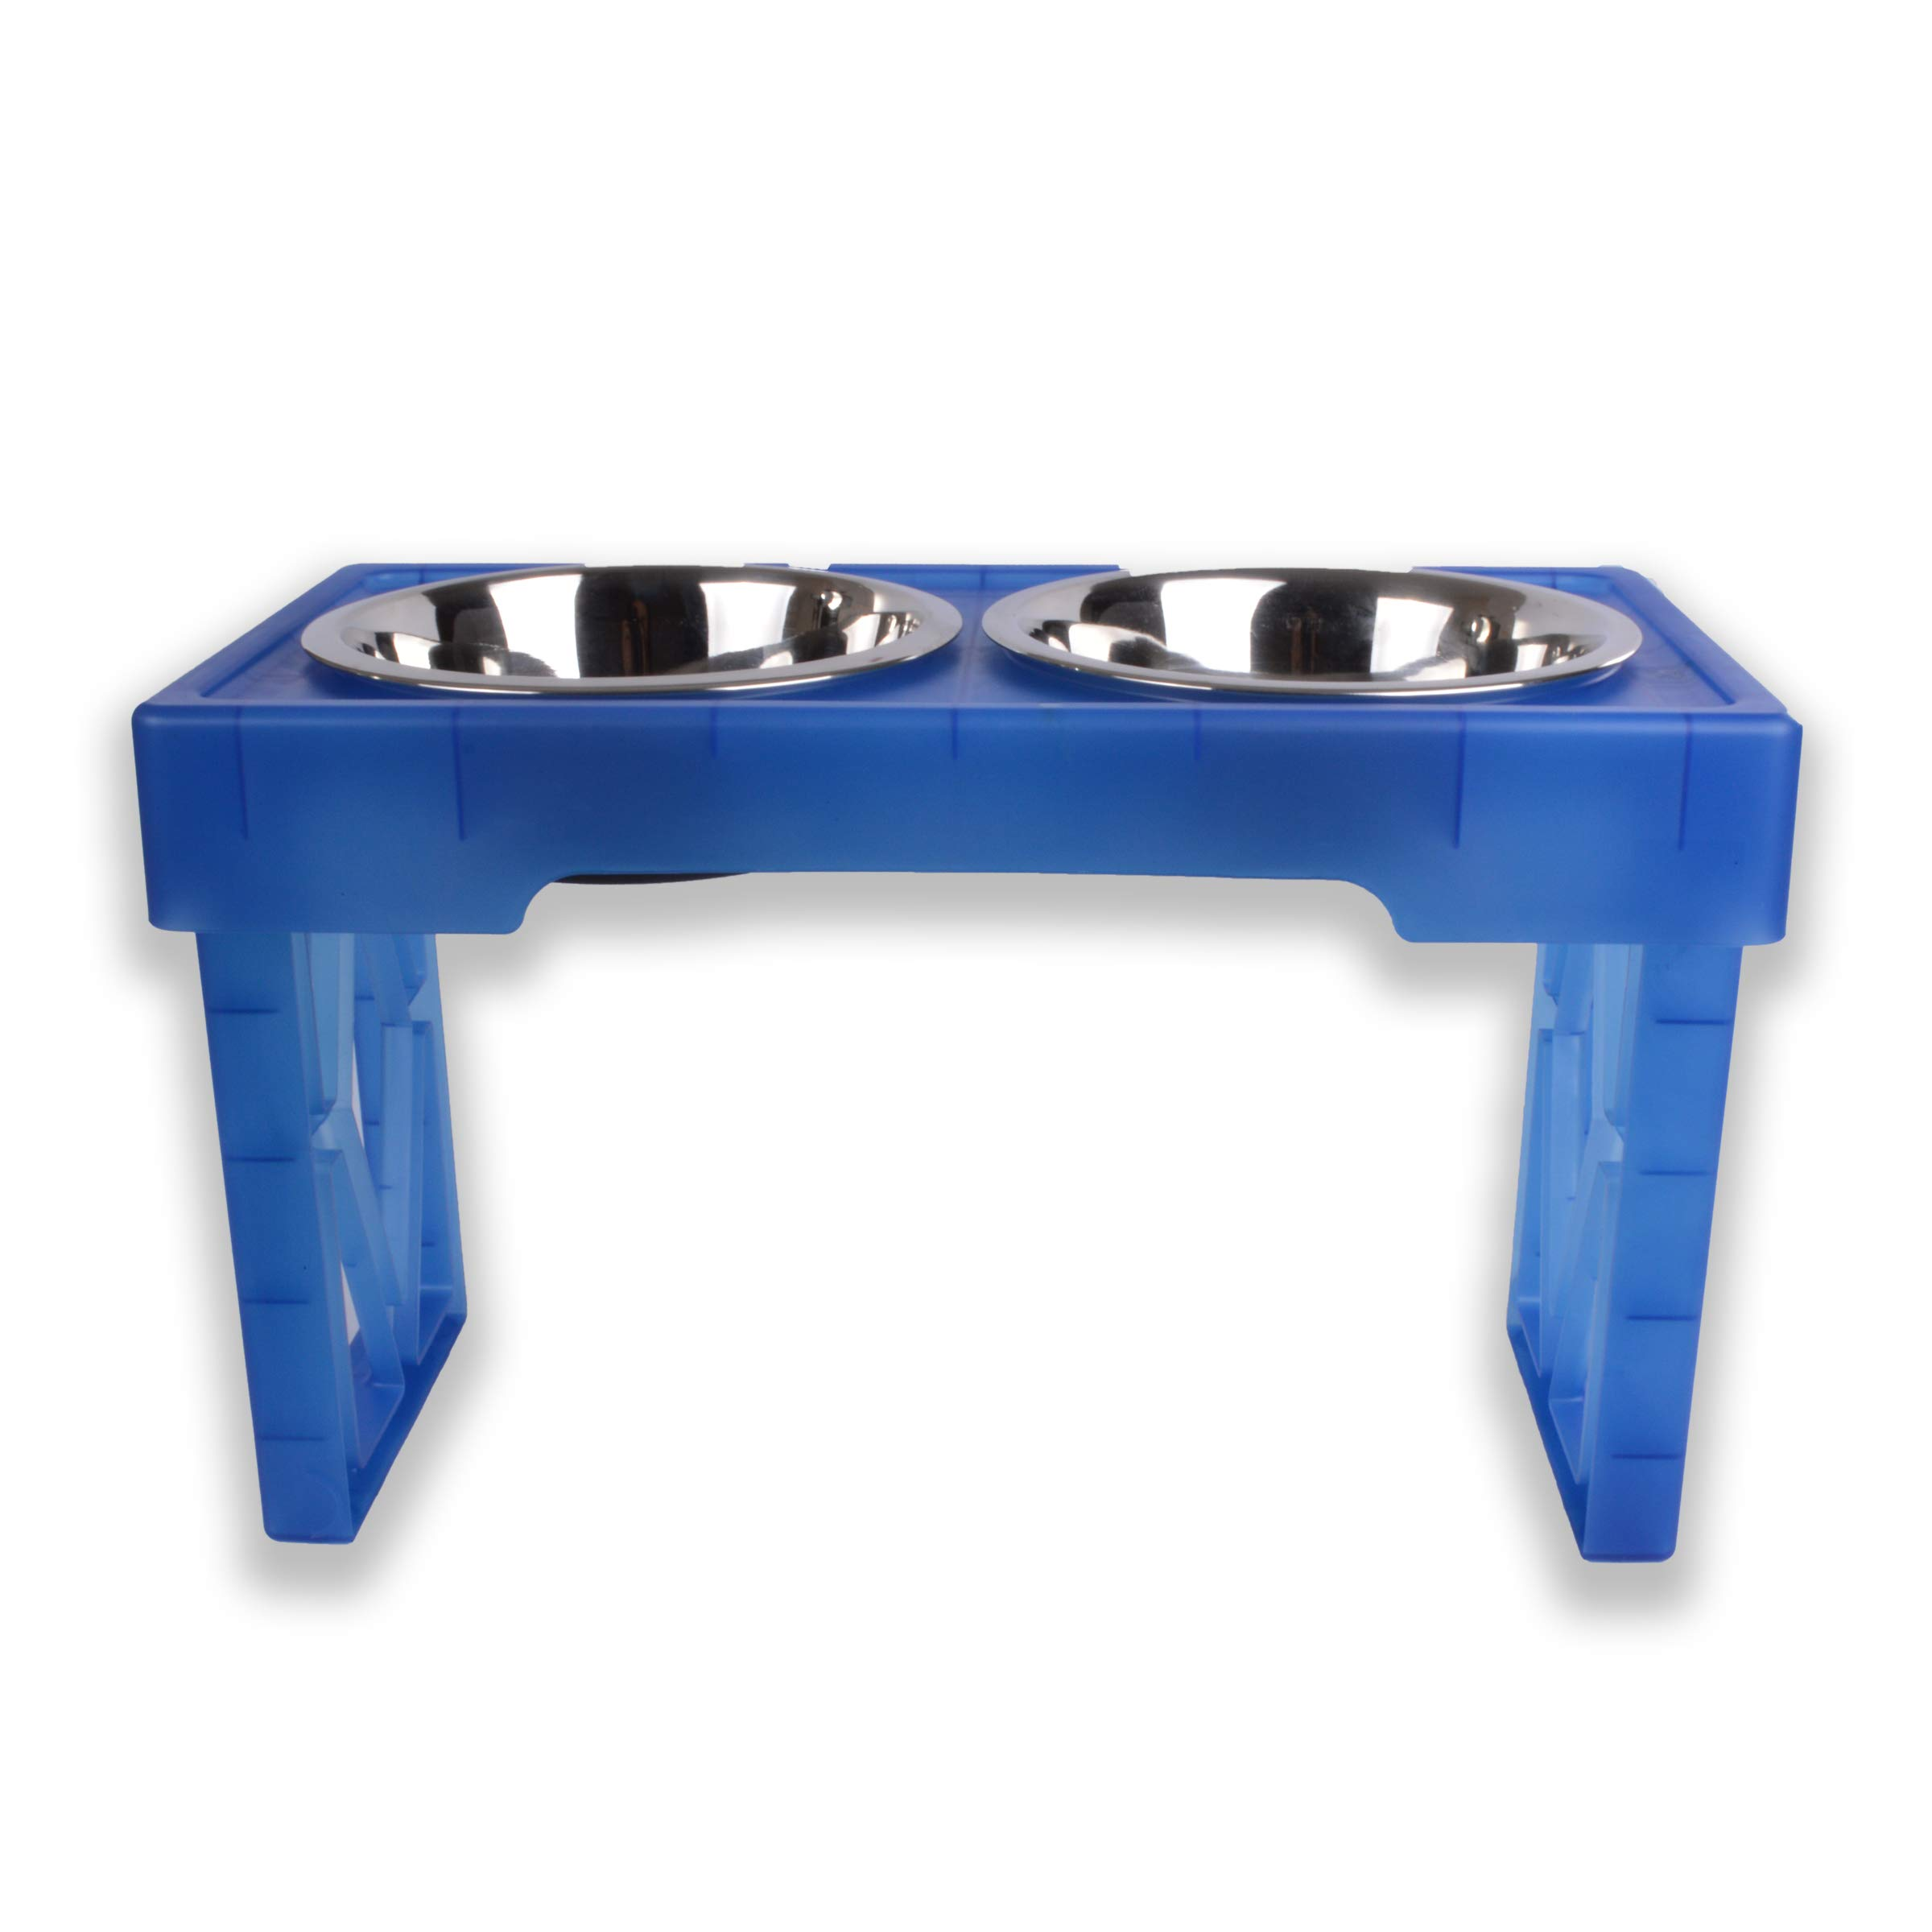 Our Pets 2550014115 Pet Zone Designer Diner, Royal Blue, One Size by Our Pets